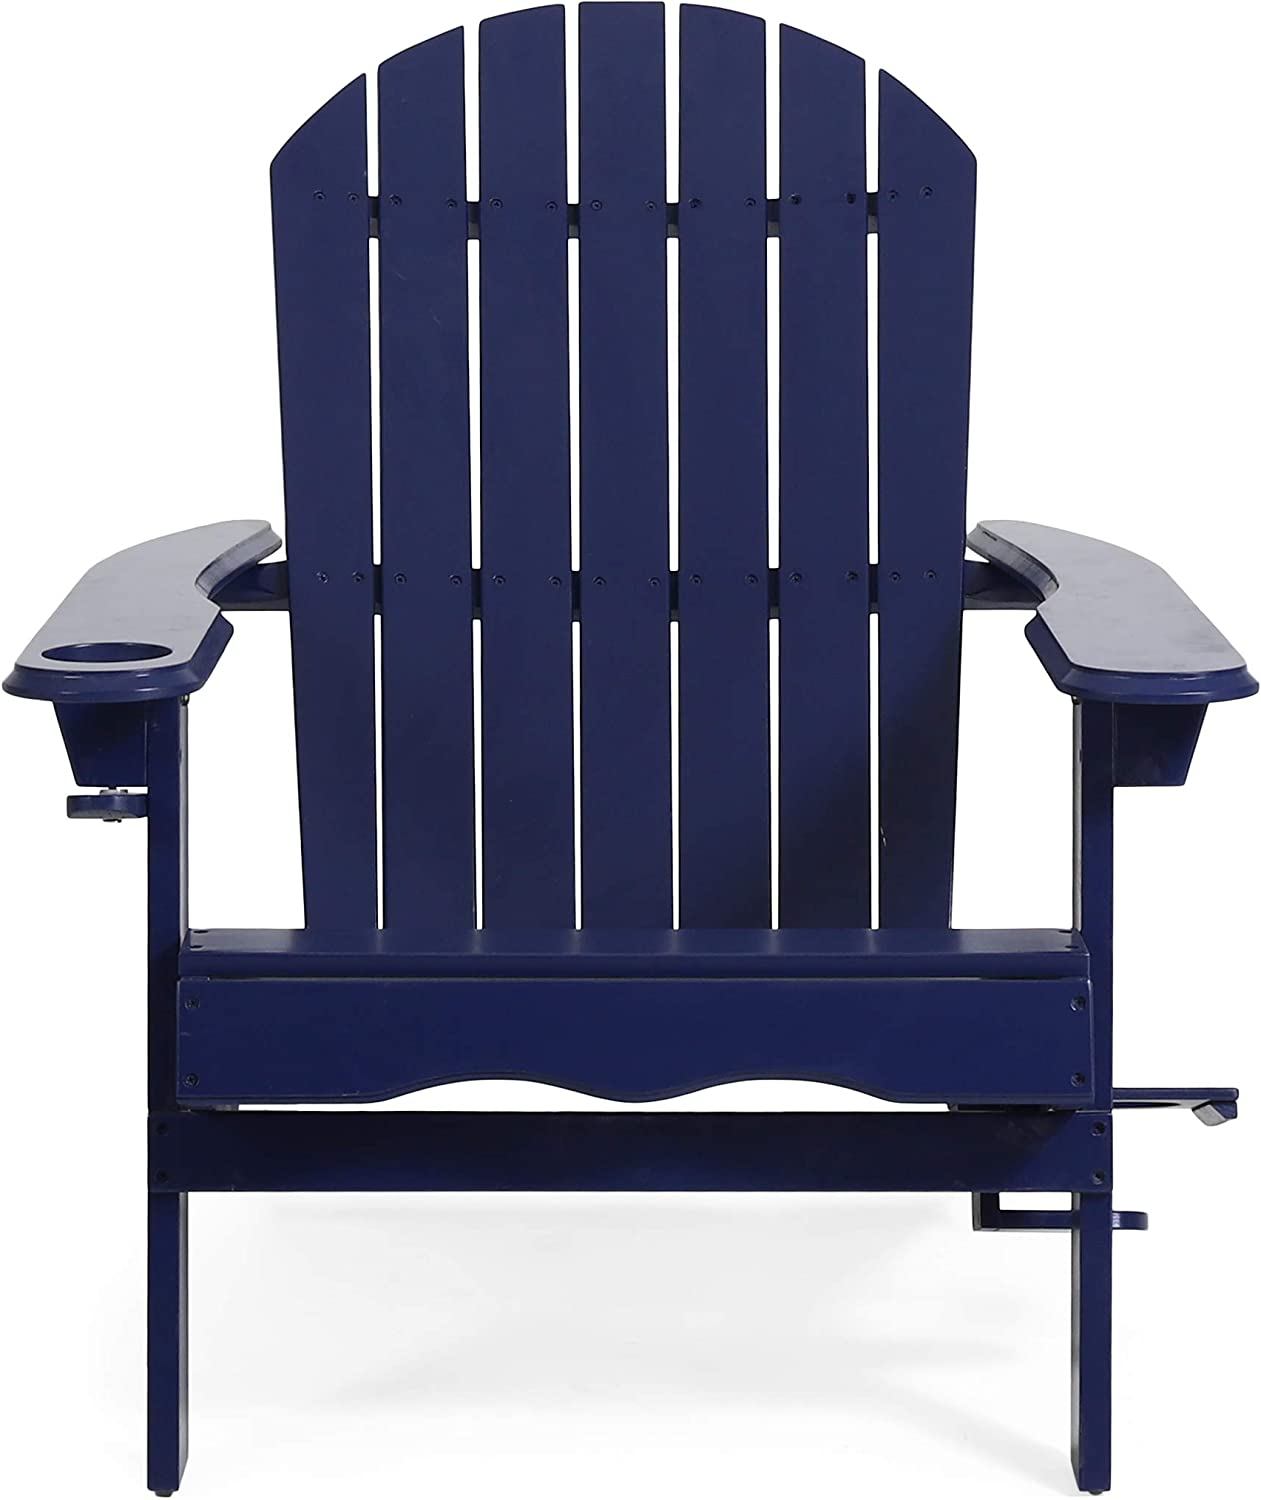 Christopher Knight Home 312847 Edmund Outdoor Acacia Wood Folding Adirondack Chair, Navy Blue